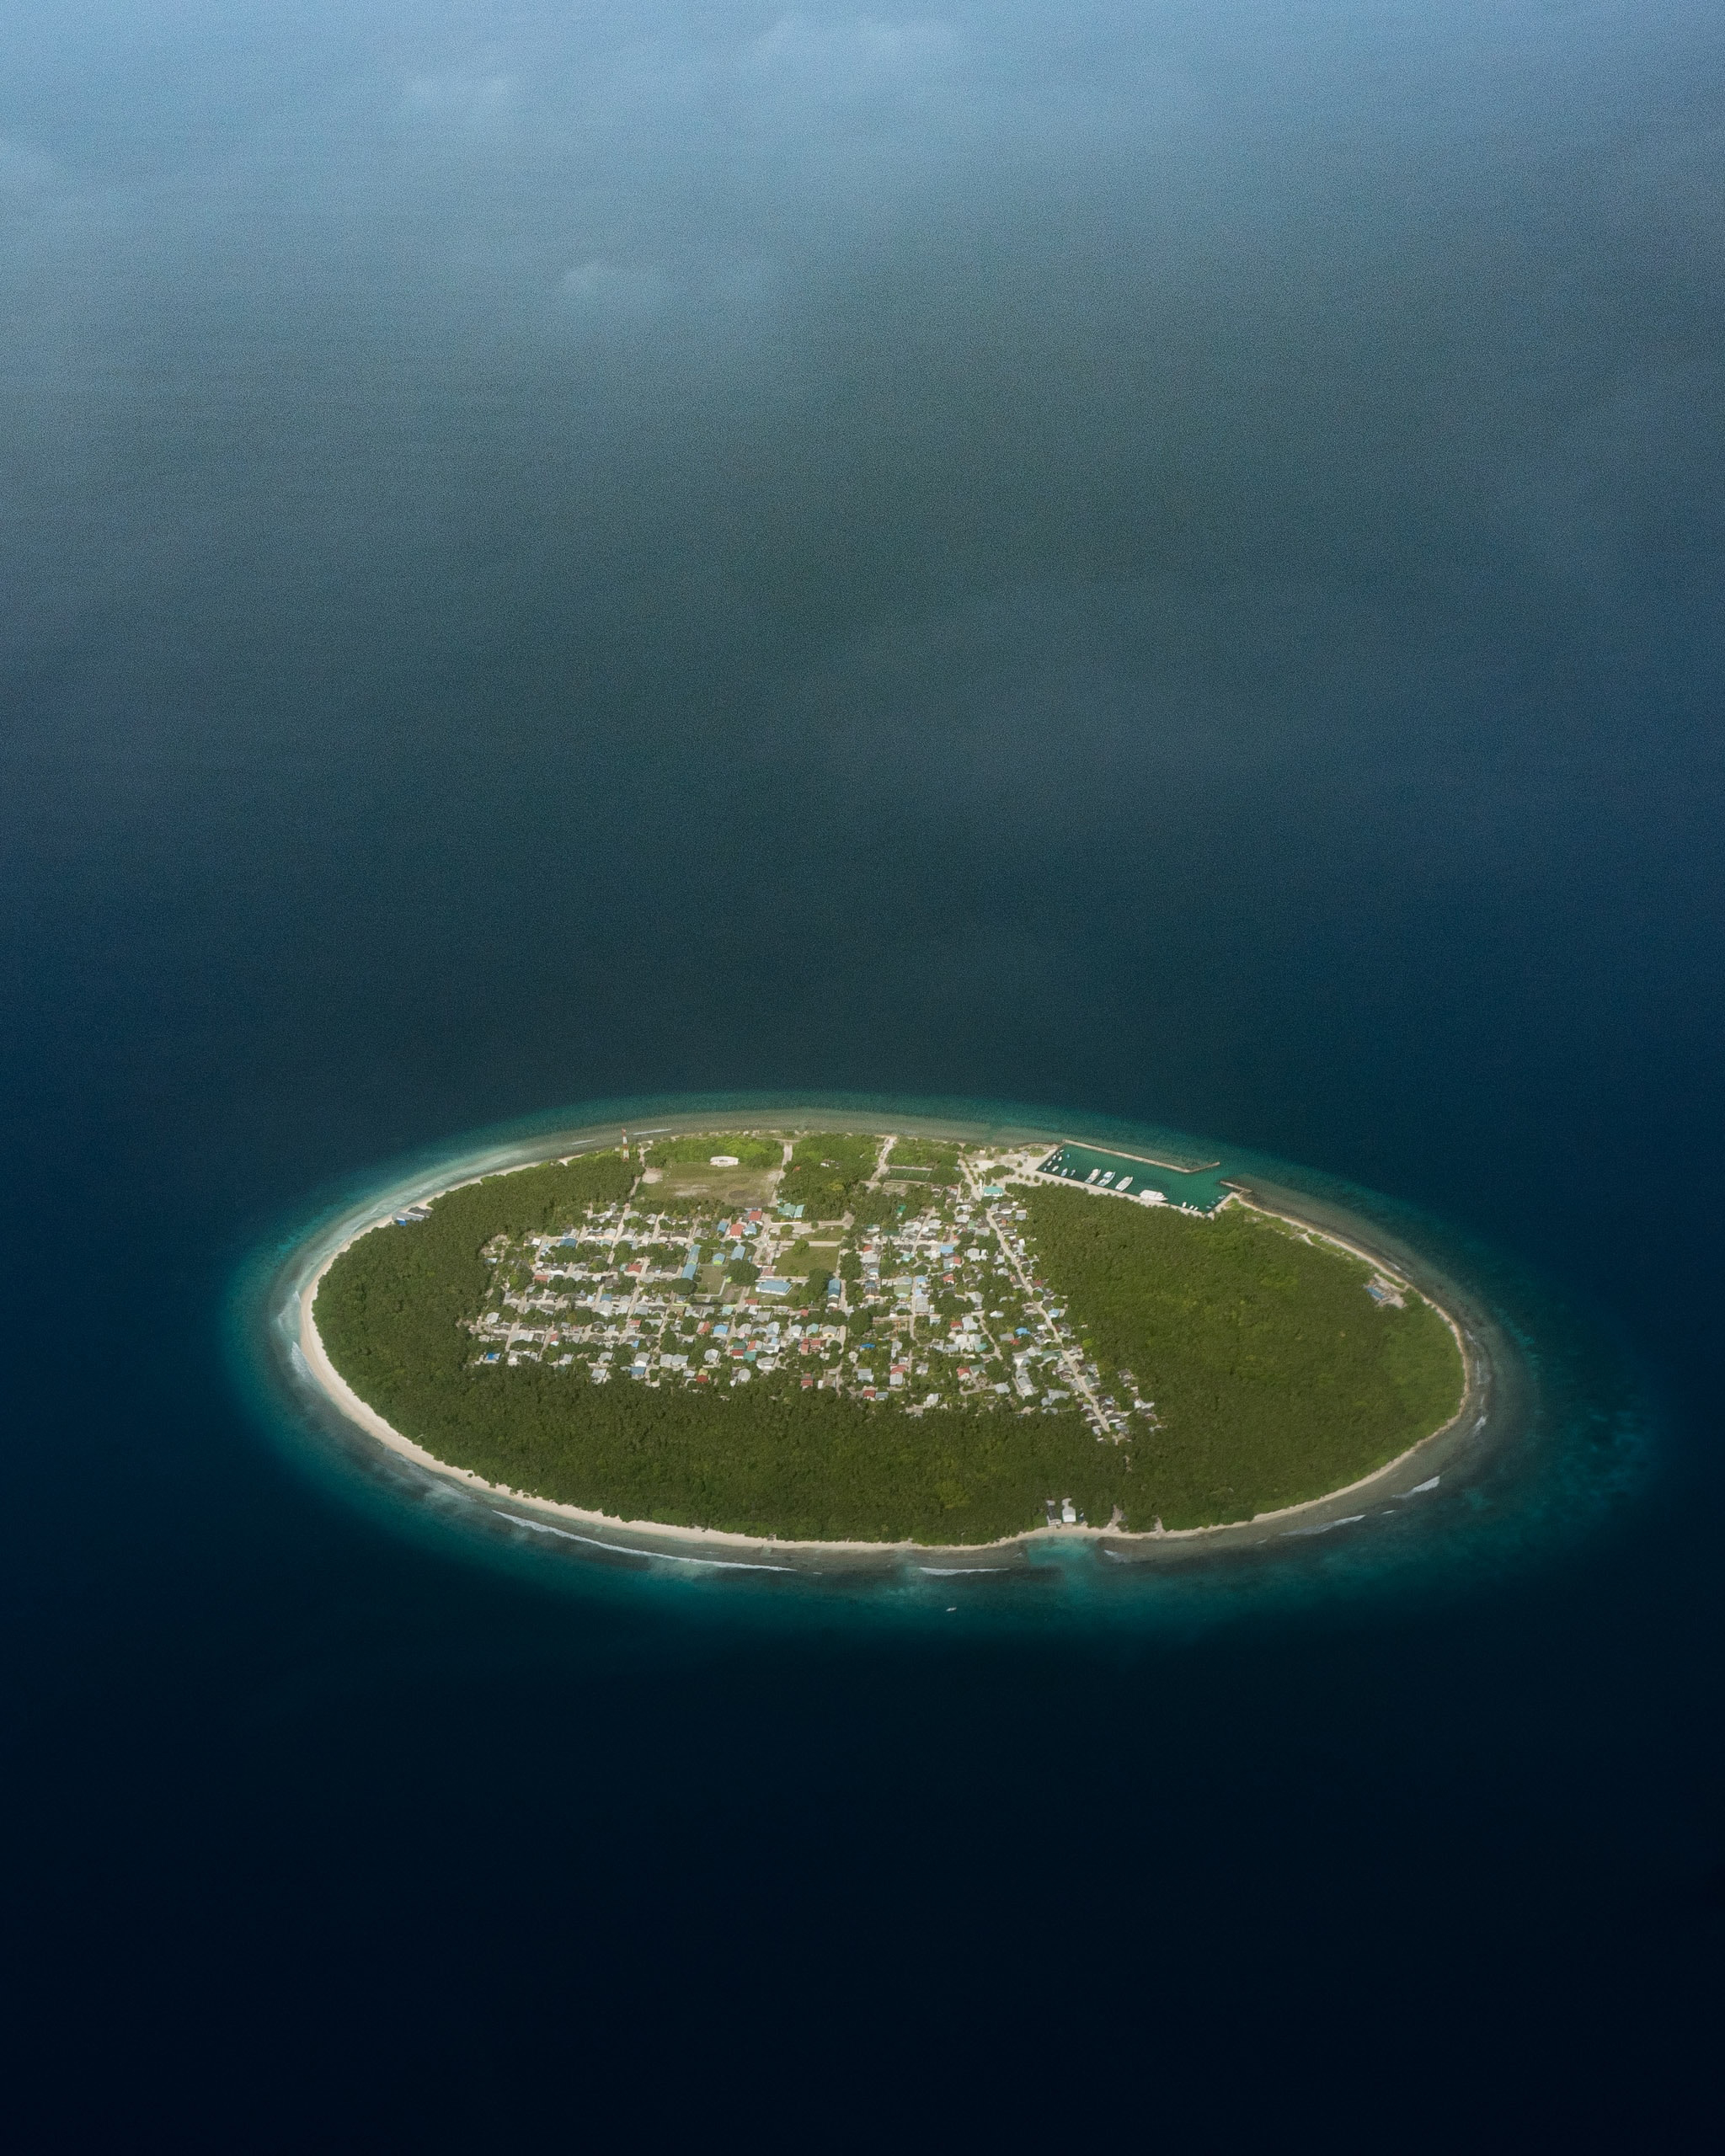 Foakaidhoo is one of 16 inhabited islands in the Shaviyani Atoll of the Maldives. Covering an area of about 0.25 square miles (0.66 square km) in the Arabian Sea, it is home to roughly 1,320 people. The island has several privately-owned shops, a health center, a school for children in preschool through grade 10, and other basic community centers.  6.326389°, 73.149167°  Source imagery: Ahmed Saffu